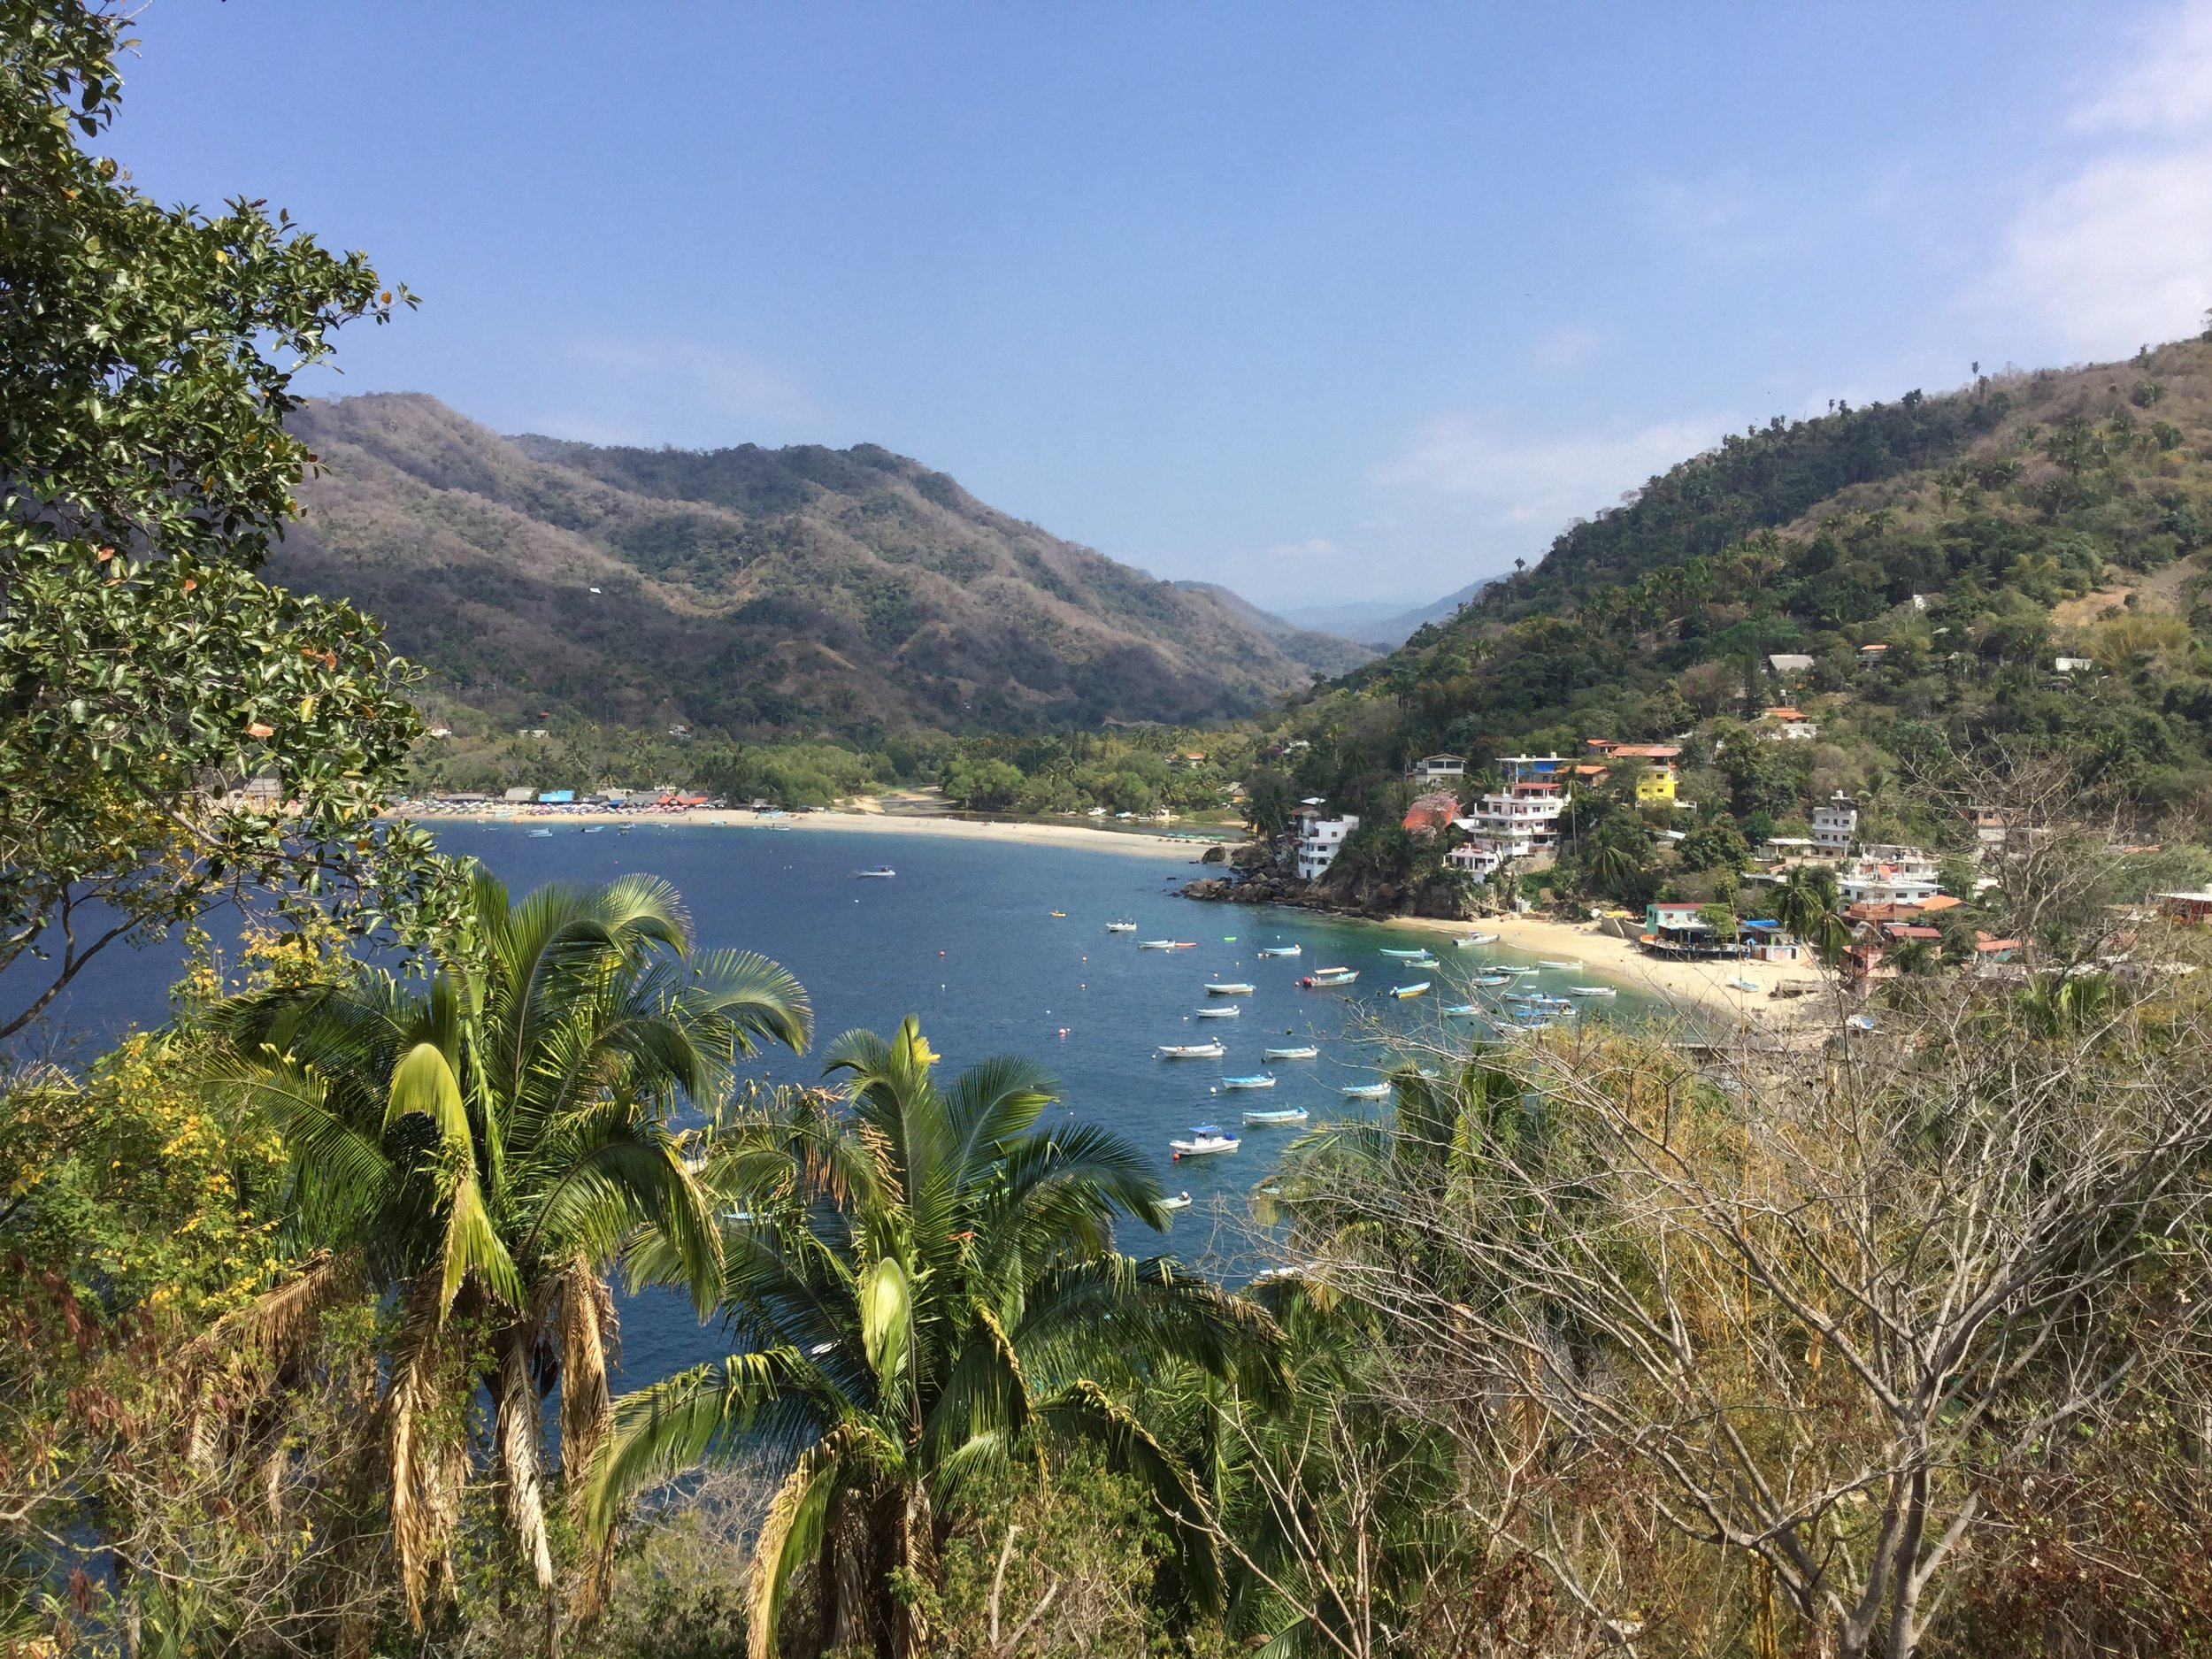 We visited Yelapa, a lovely bay only accessible by boat. Linda had been there over twenty years ago and wanted to see it again. This picture is from the patio of Casa La Loma, a family hotel half way up a hill. It was so beautiful.